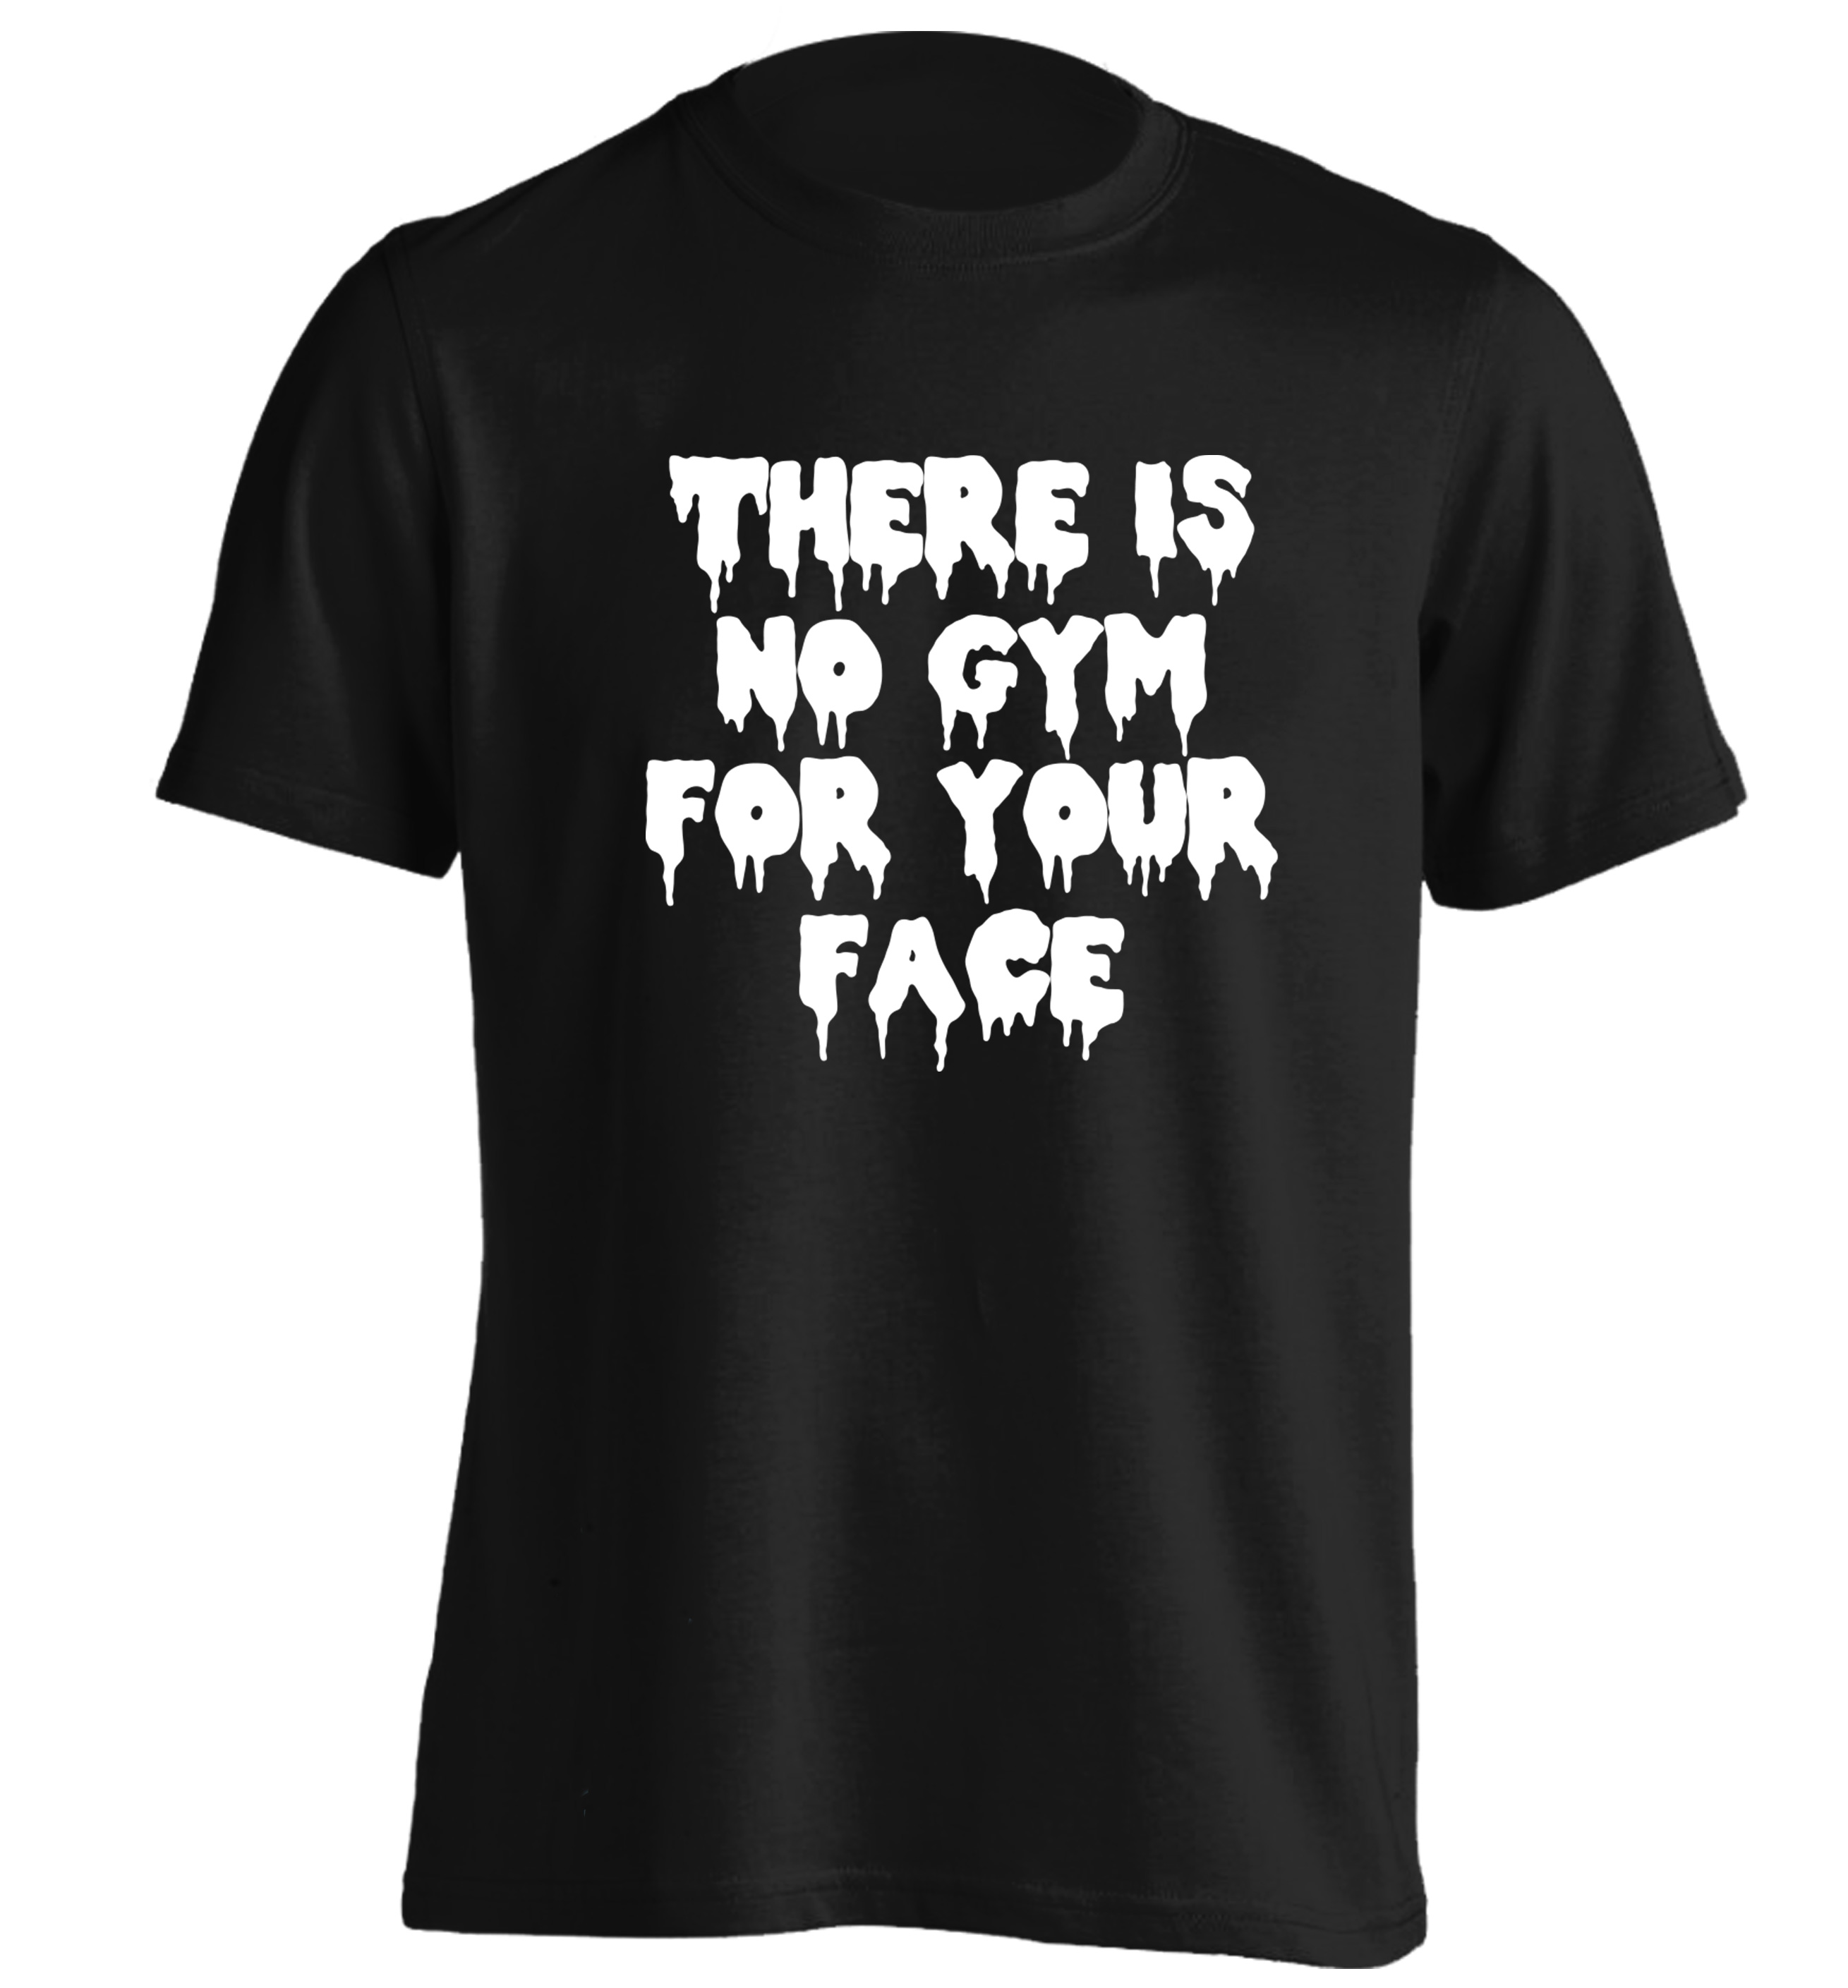 There Is No Gym For Your Face Tshirt Sass Sassy Funny Joke Instagram